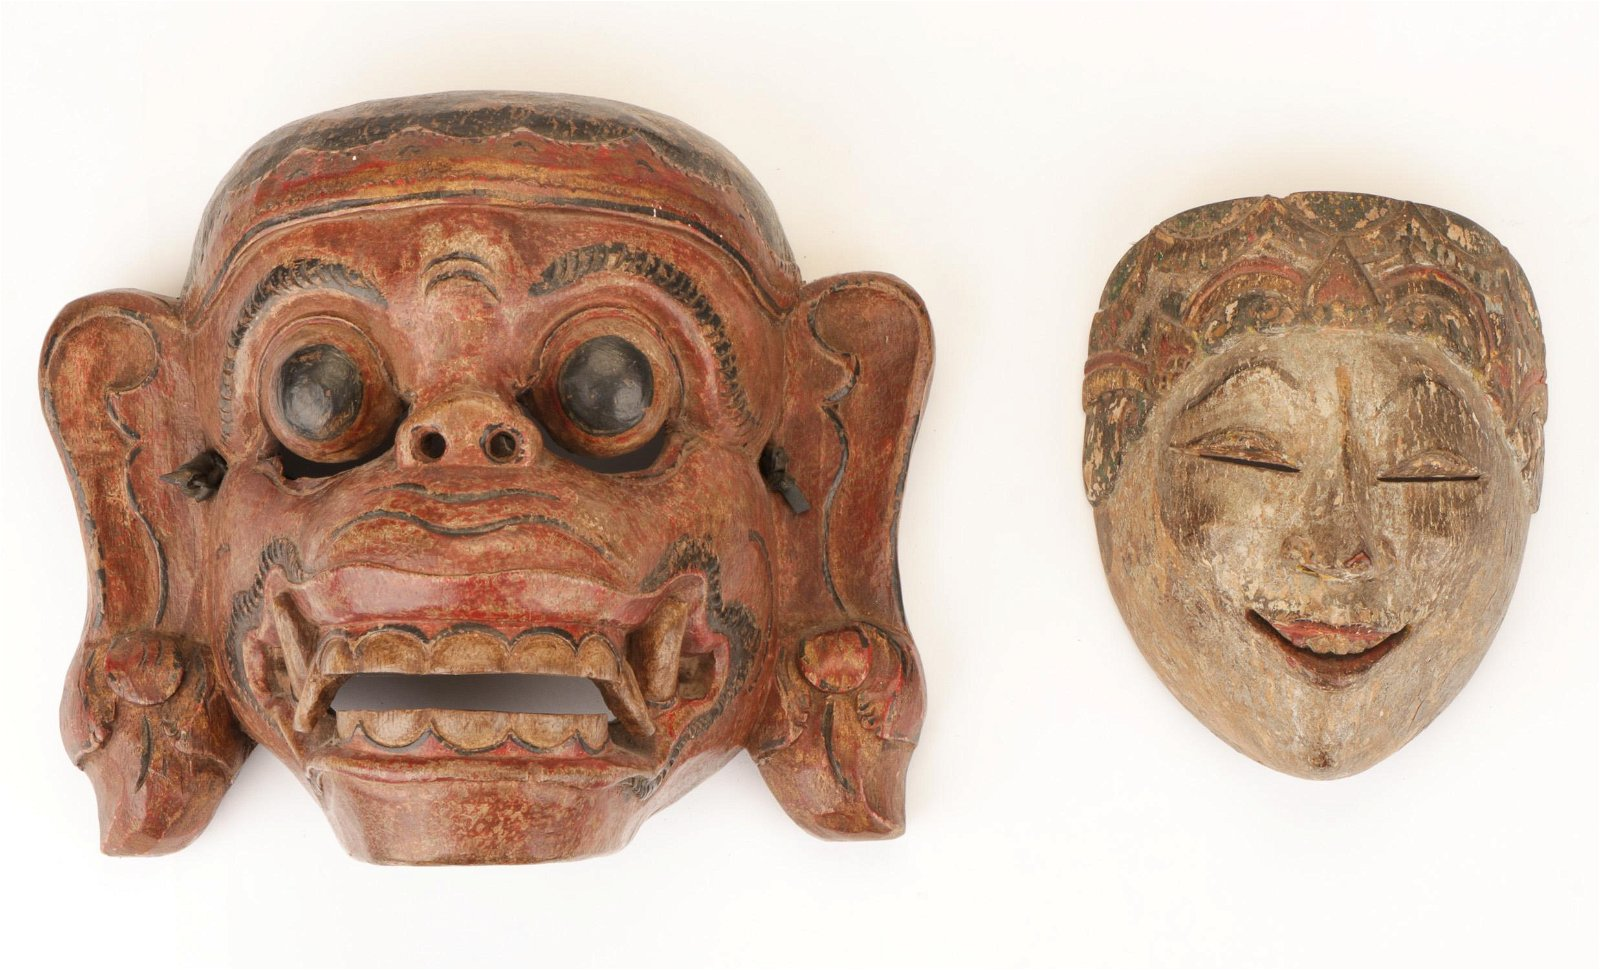 2 Indonesian Masks, late 19th/early 20th C.